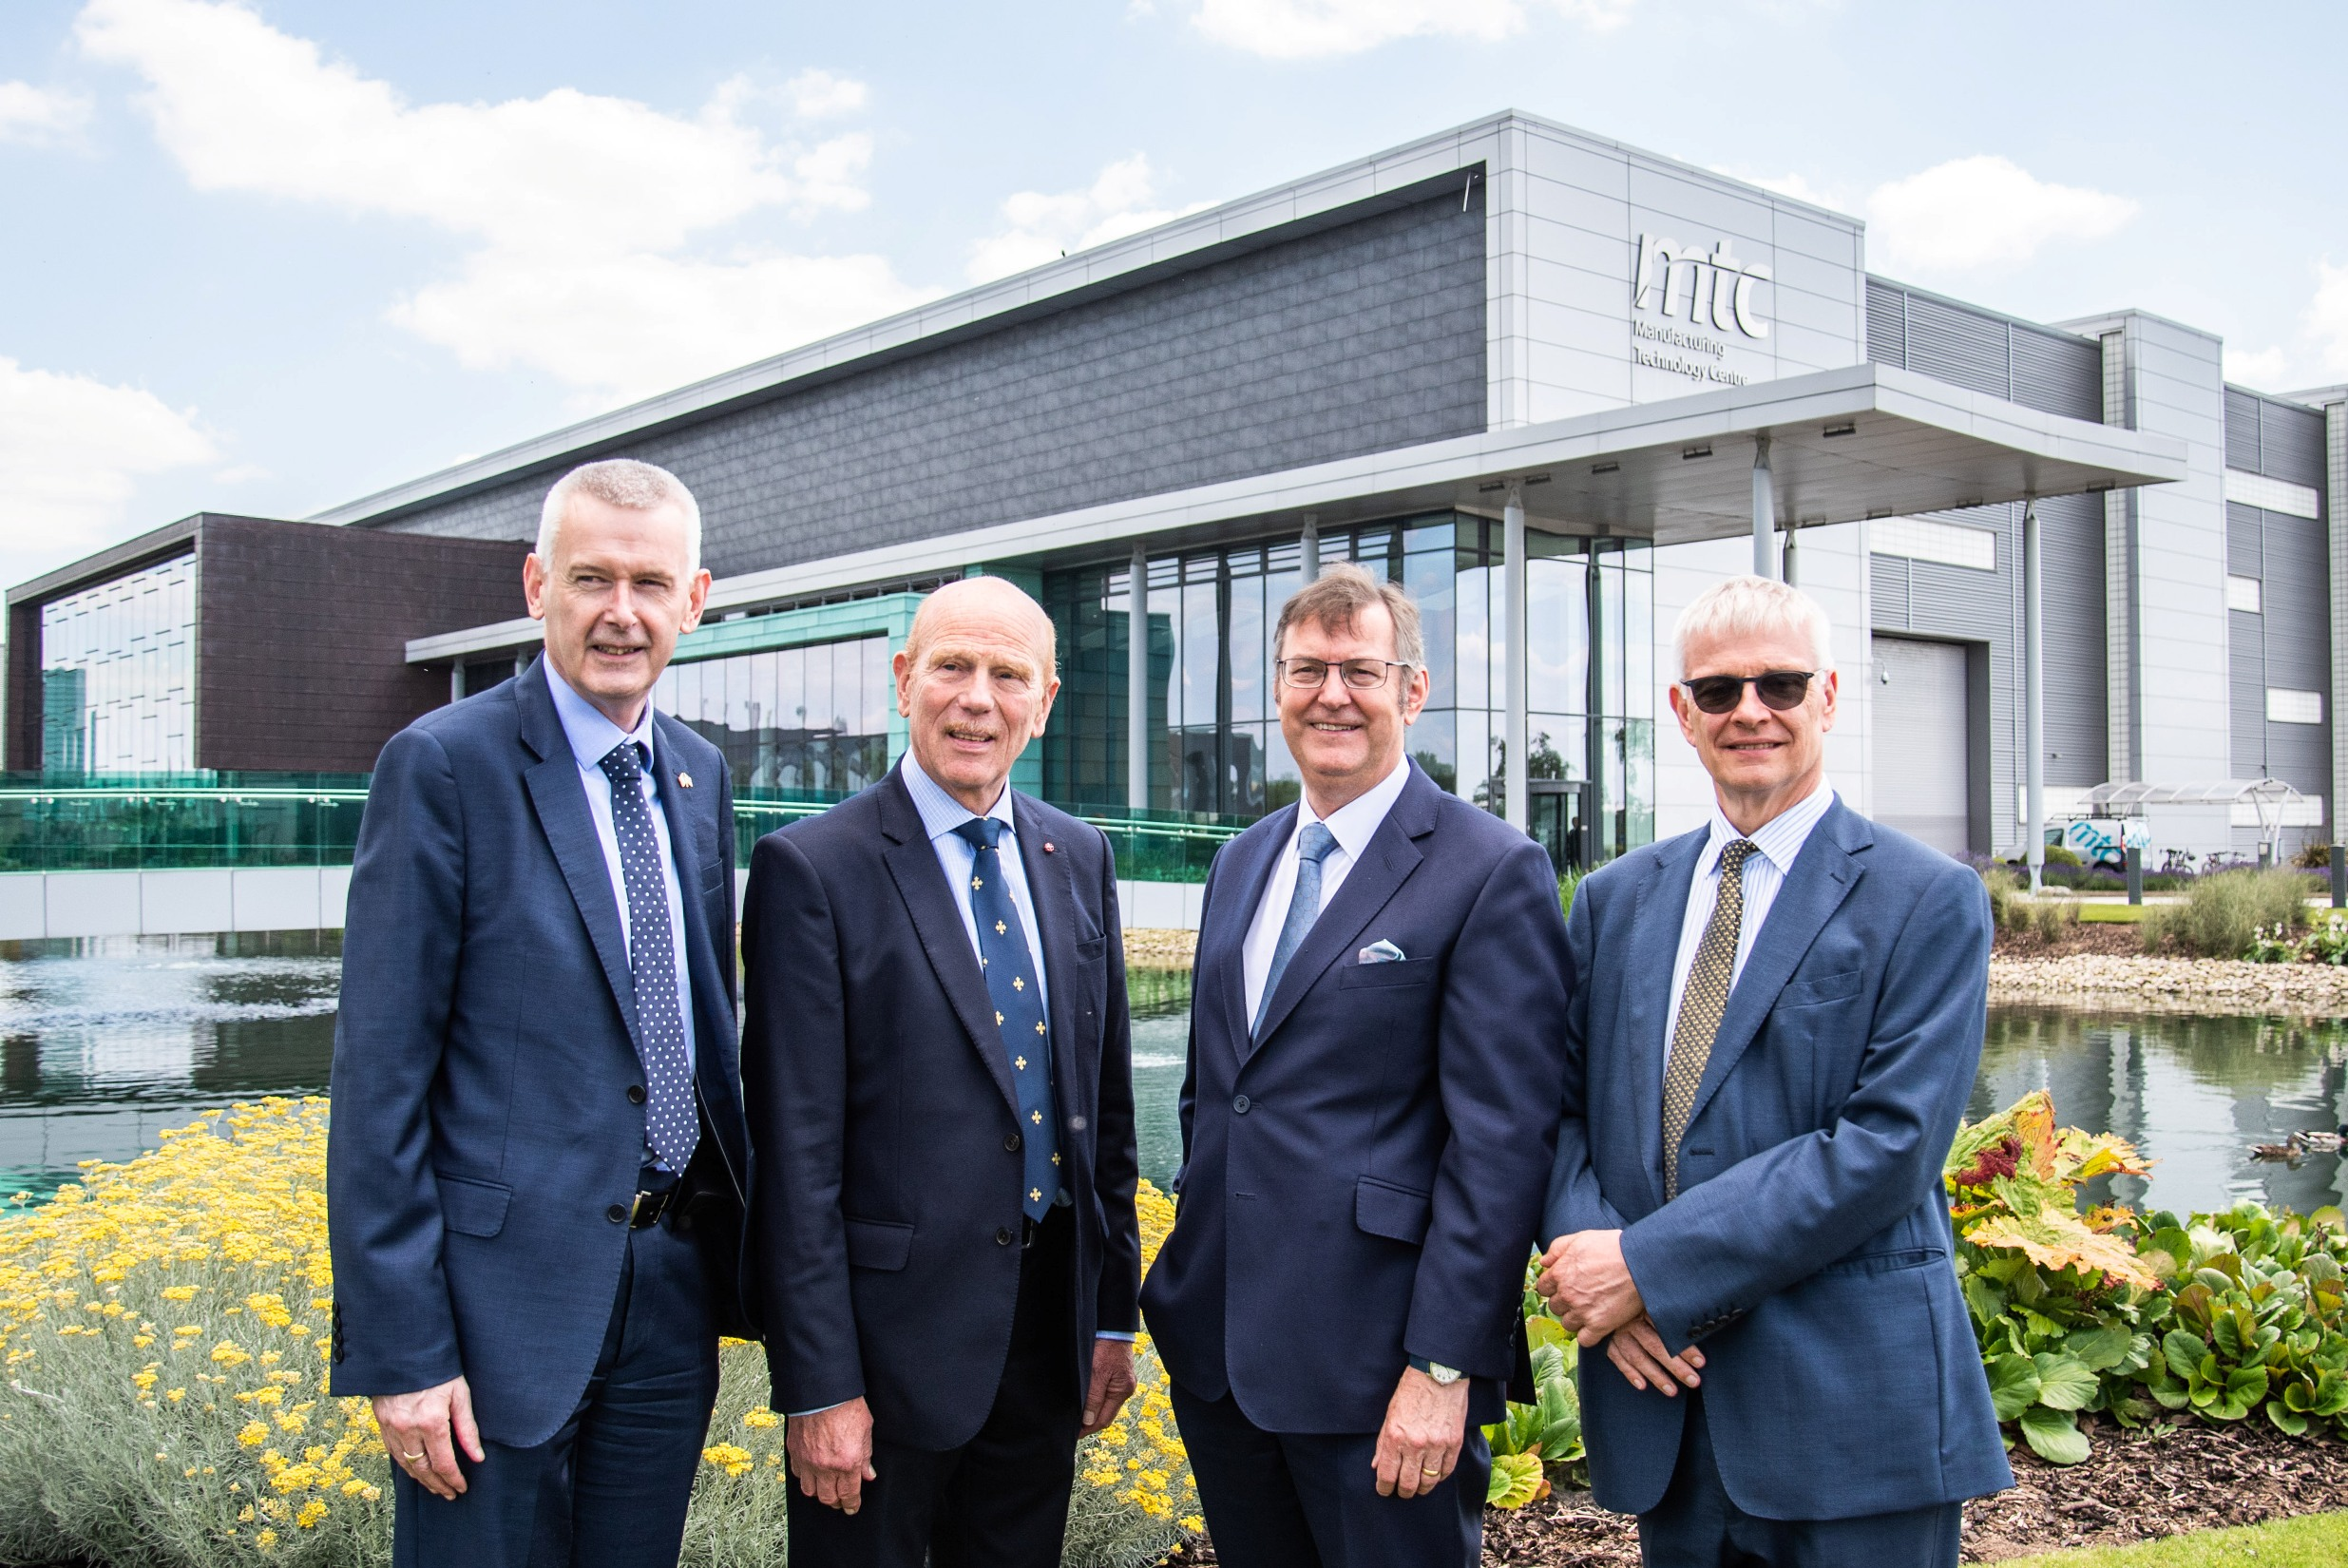 Pictured: Ambassador Adrian O'Neill, Ambassador of Ireland to the United Kingdom, IMR chairman Dr Will Barton OBE, Dr Clive Hickman, chief executive of the MTC and the British Ambassador to Ireland, Robin Barnett CMG